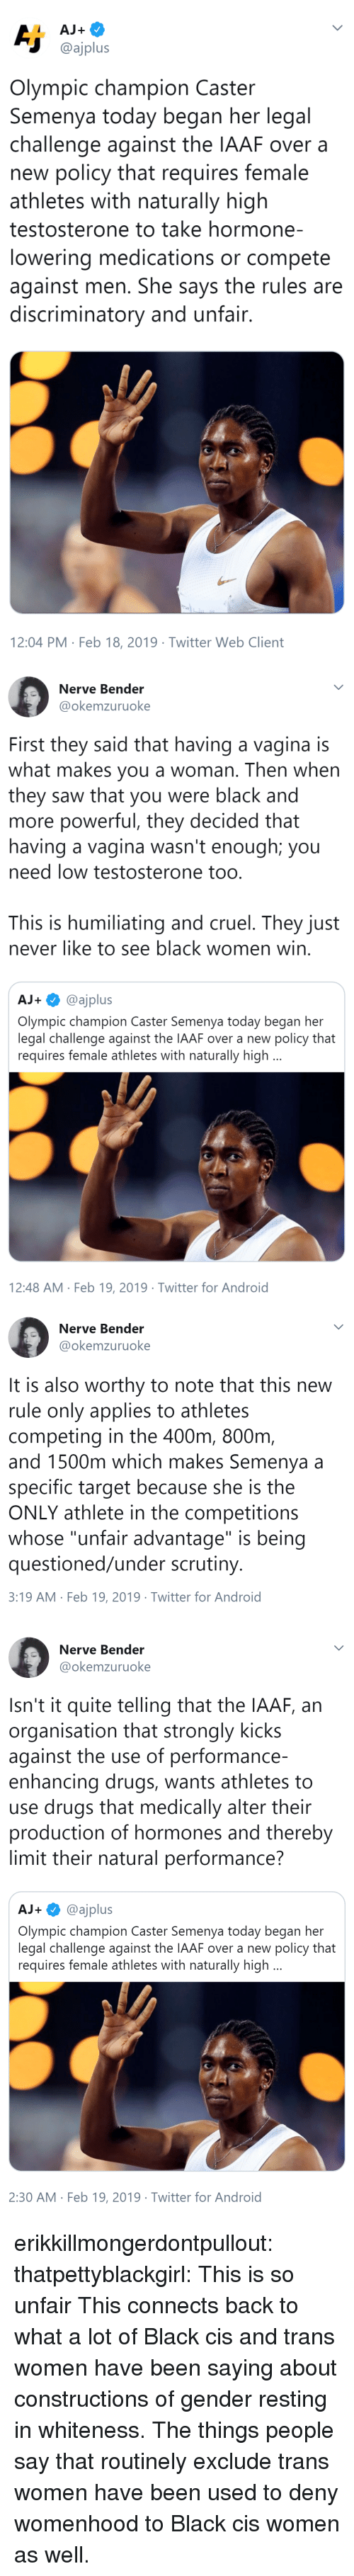 "Bender: @ajplus  Olympic champion Caster  Semenya today began her legal  challenge against the IAAF over a  new policy that requires female  athletes with naturally high  testosterone to take hormone-  lowering medications or compete  against men. She says the rules are  discriminatory and unfair  12:04 PM Feb 18, 2019 Twitter Web Client   Nerve Bender  @okemzuruoke  First they said that having a vagina is  what makes you a woman. Then when  they saw that you were black and  more powerful, they decided that  having a vagina wasn't enough; you  need low testosterone too  This is humiliating and cruel. They just  never like to see black women win  AJ+@ajplus  Olympic champion Caster Semenya today began her  legal challenge against the IAAF over a new policy that  requires female athletes with naturally high  12:48 AM Feb 19, 2019 Twitter for Android   Nerve Bender  @okemzuruoke  It is also worthy to note that this new  rule only applies to athletes  competing in the 400m, 800nm  and 1500m which makes Semenya a  specific target because she is the  ONLY athlete in the competitions  whose ""unfair advantage"" is being  questioned/under scrutiny  3:19 AM Feb 19, 2019 Twitter for Android   Nerve Bender  @okemzuruoke  Isn't it quite telling that the IAAF, an  organisation that strongly kicks  against the use of performance-  enhancing drugs, wants athletes to  use drugs that medically alter their  production of hormones and thereby  limit their natural performance?  AJ+@ajplus  Olympic champion Caster Semenya today began her  legal challenge against the IAAF over a new policy that  requires female athletes with naturally high  2:30 AM Feb 19, 2019 Twitter for Android erikkillmongerdontpullout: thatpettyblackgirl:  This is so unfair    This connects back to what a lot of Black cis and trans women have been saying about constructions of gender resting in whiteness. The things people say that routinely exclude trans women have been used to deny womenhood to Black cis women as well."